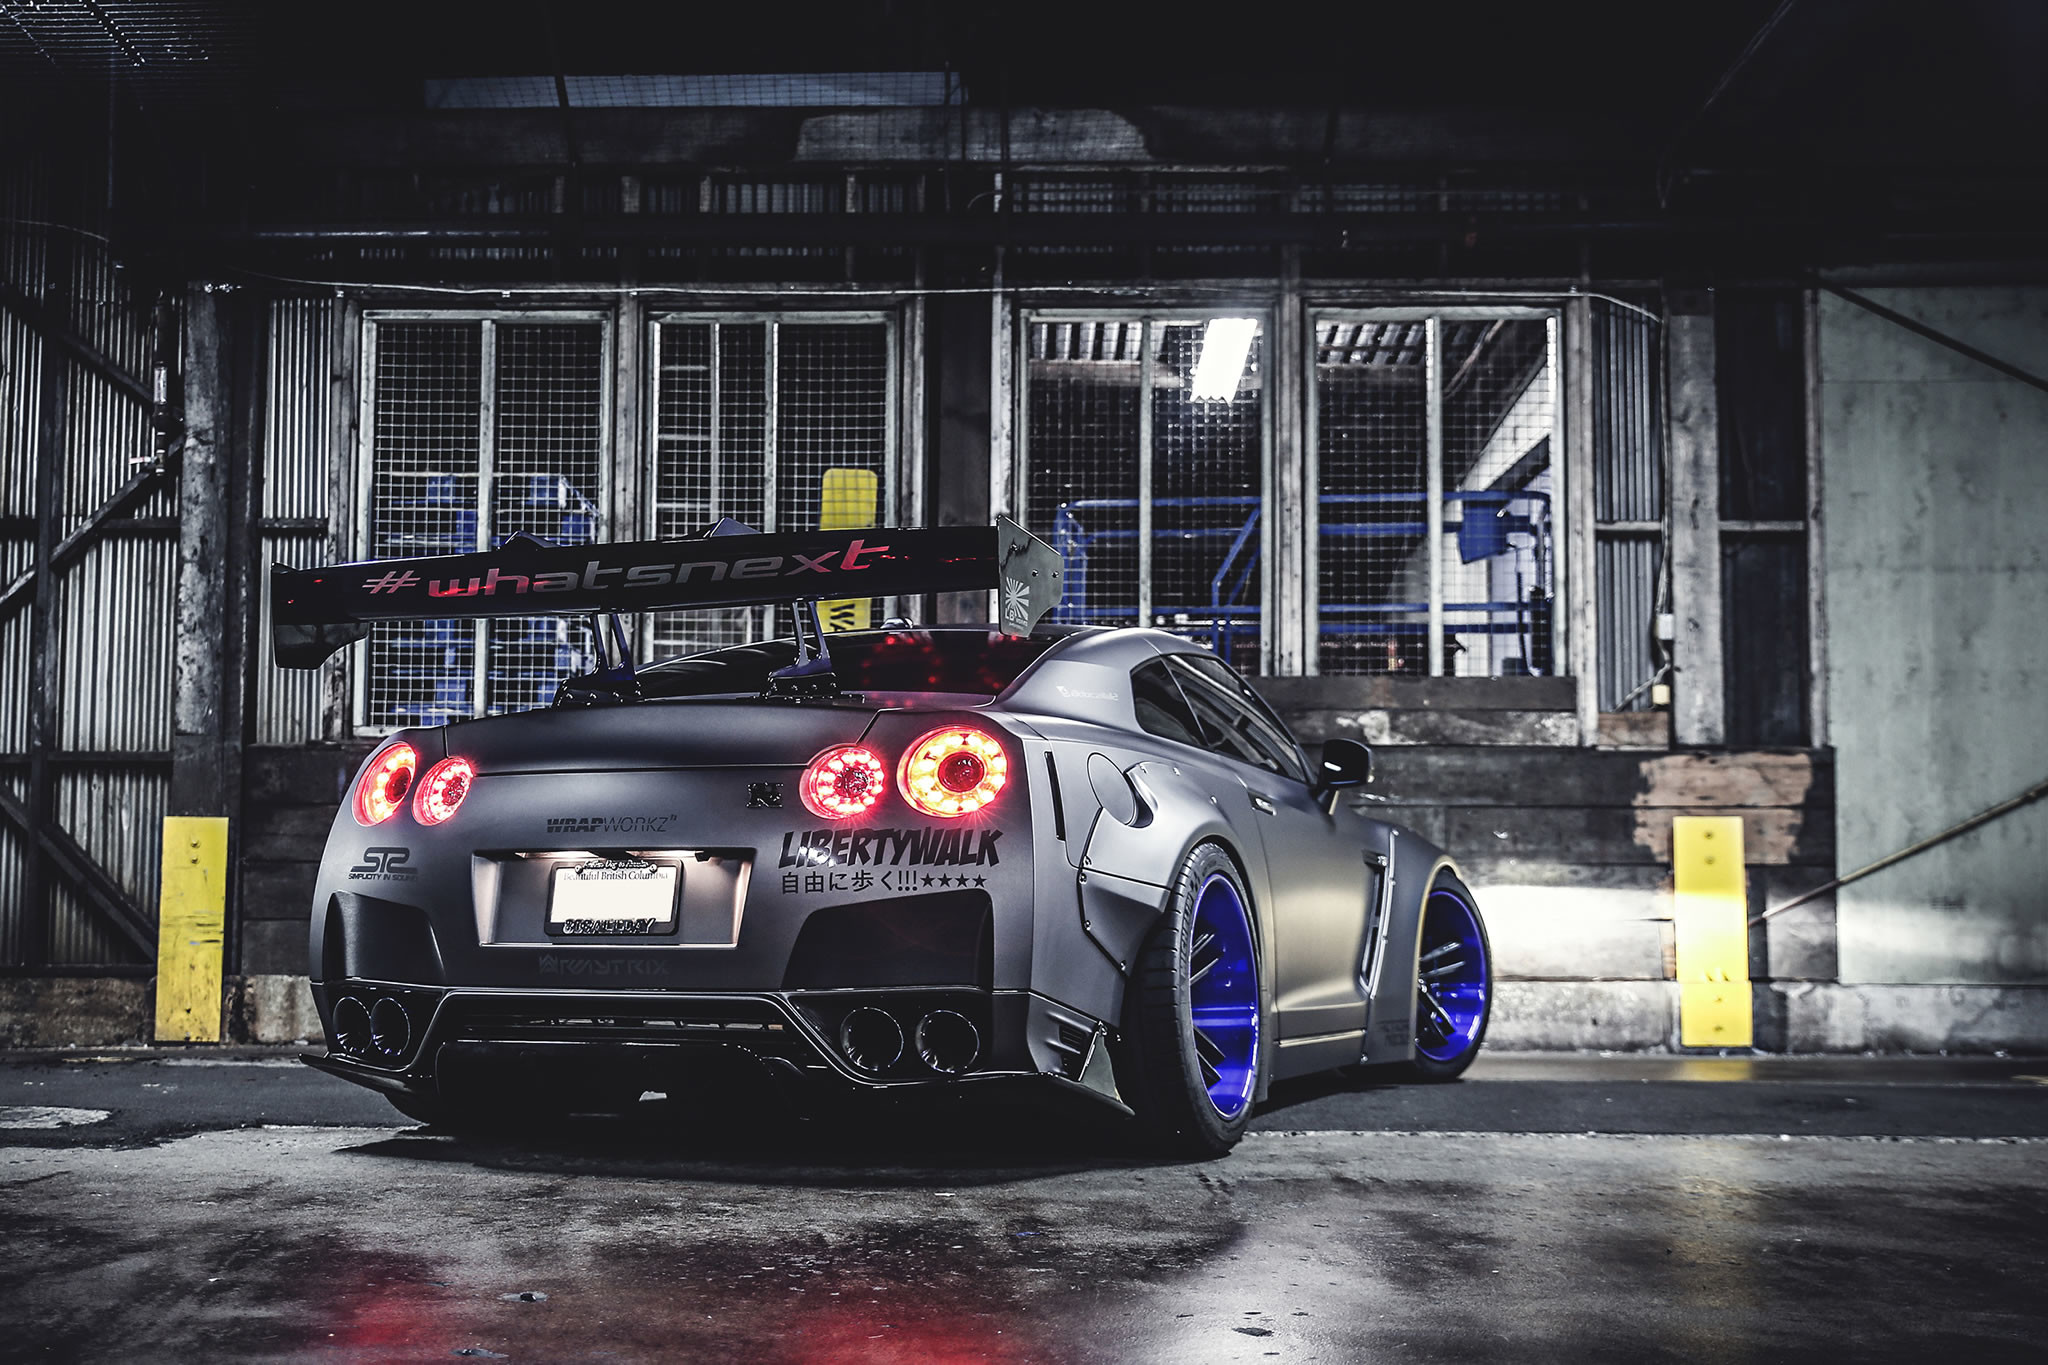 2048x1365 2013 Nissan GT-R by Liberty Walk - rear photo, Marcel Lech Photography .